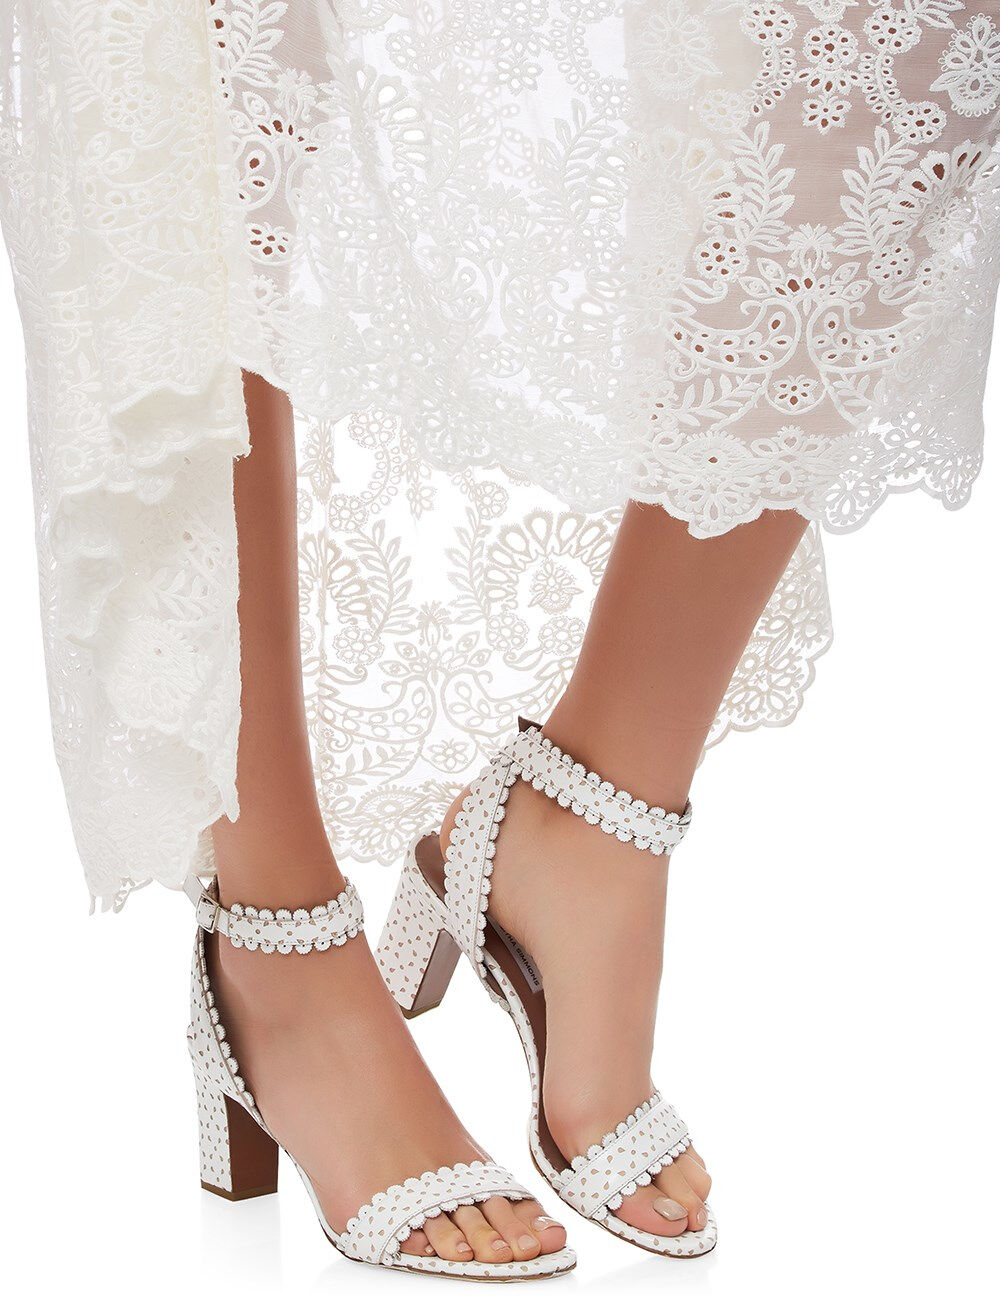 695 NEW Tabitha Simmons LETICIA LETICIA LETICIA blanc Perforat Leather Eyelet Sandals chaussures 40 1e85c3